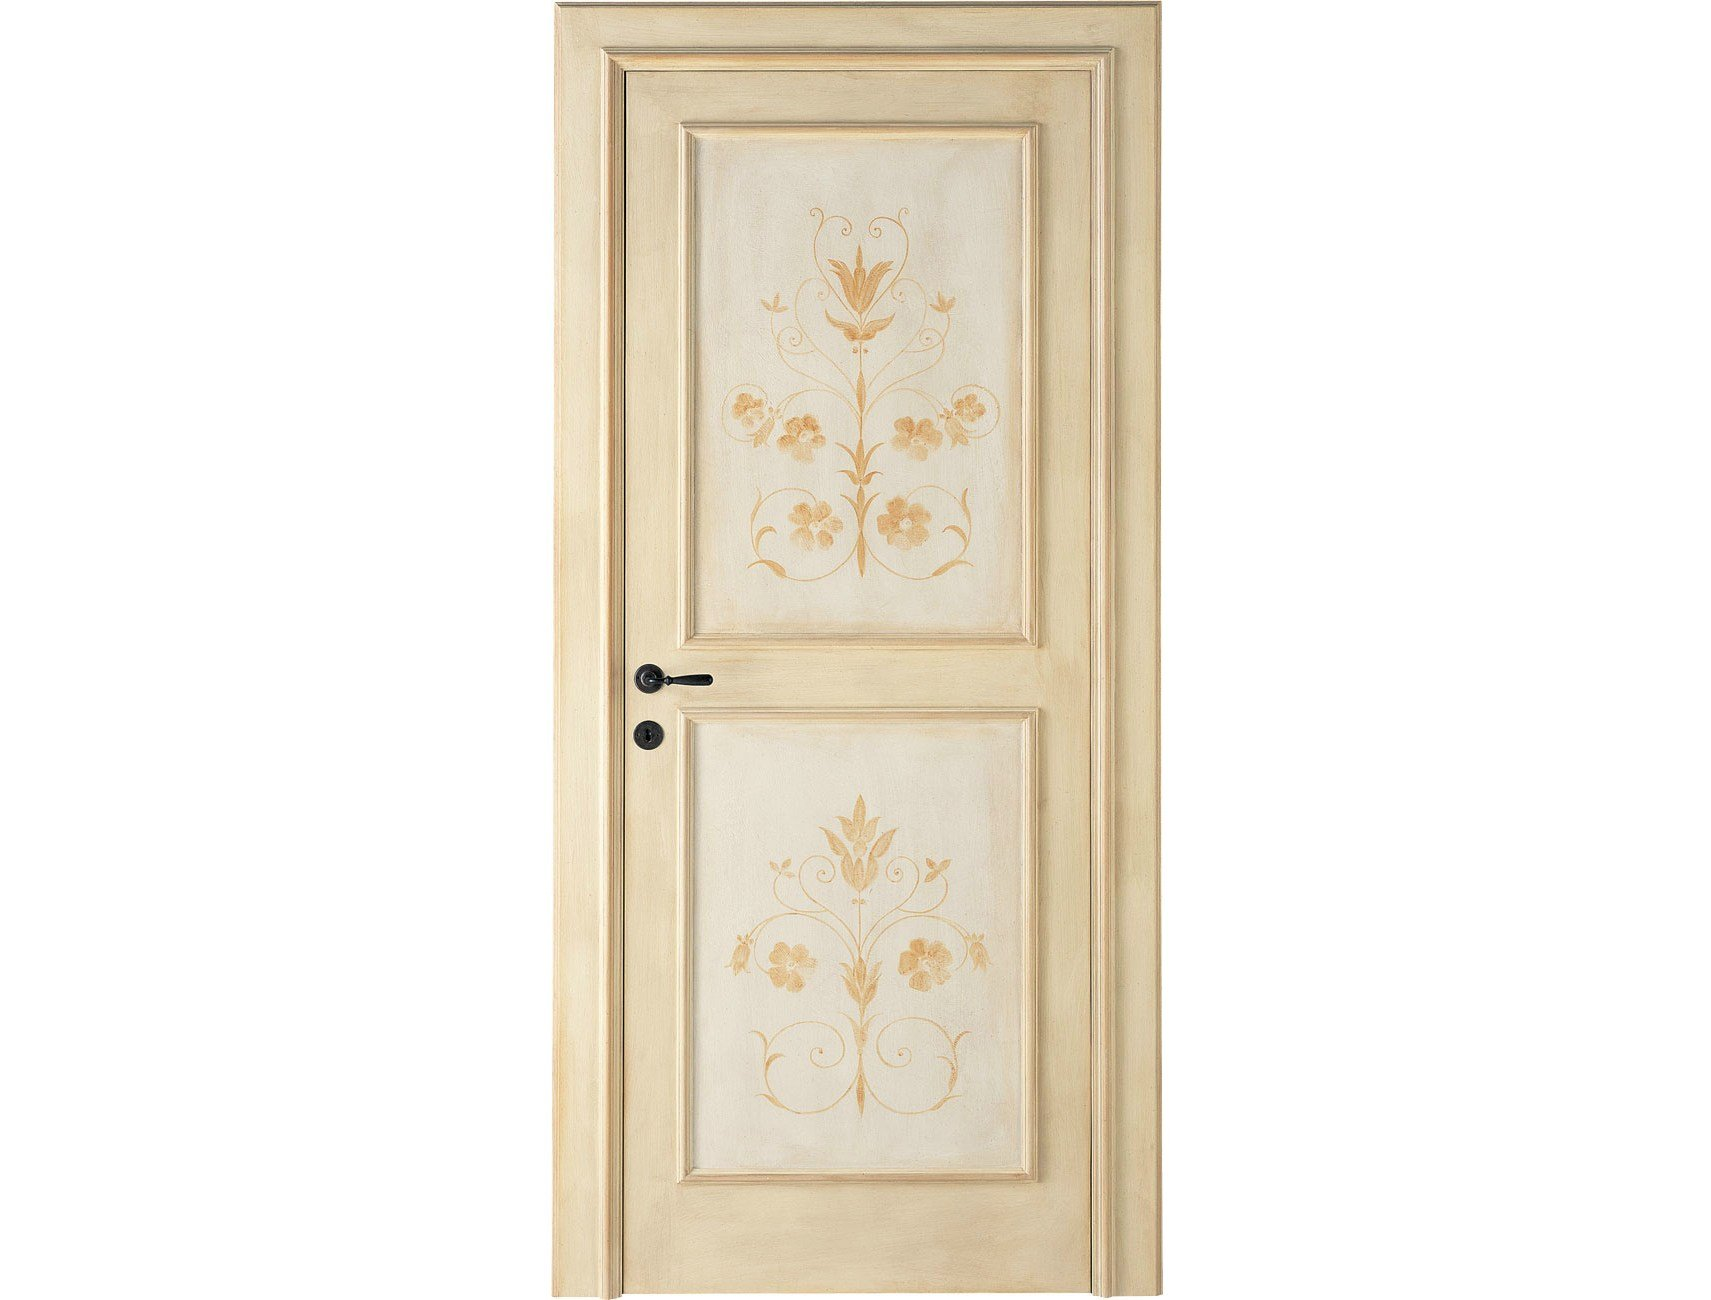 porte decorate - 28 images - porte decorate vetroexpert, dn modena ...